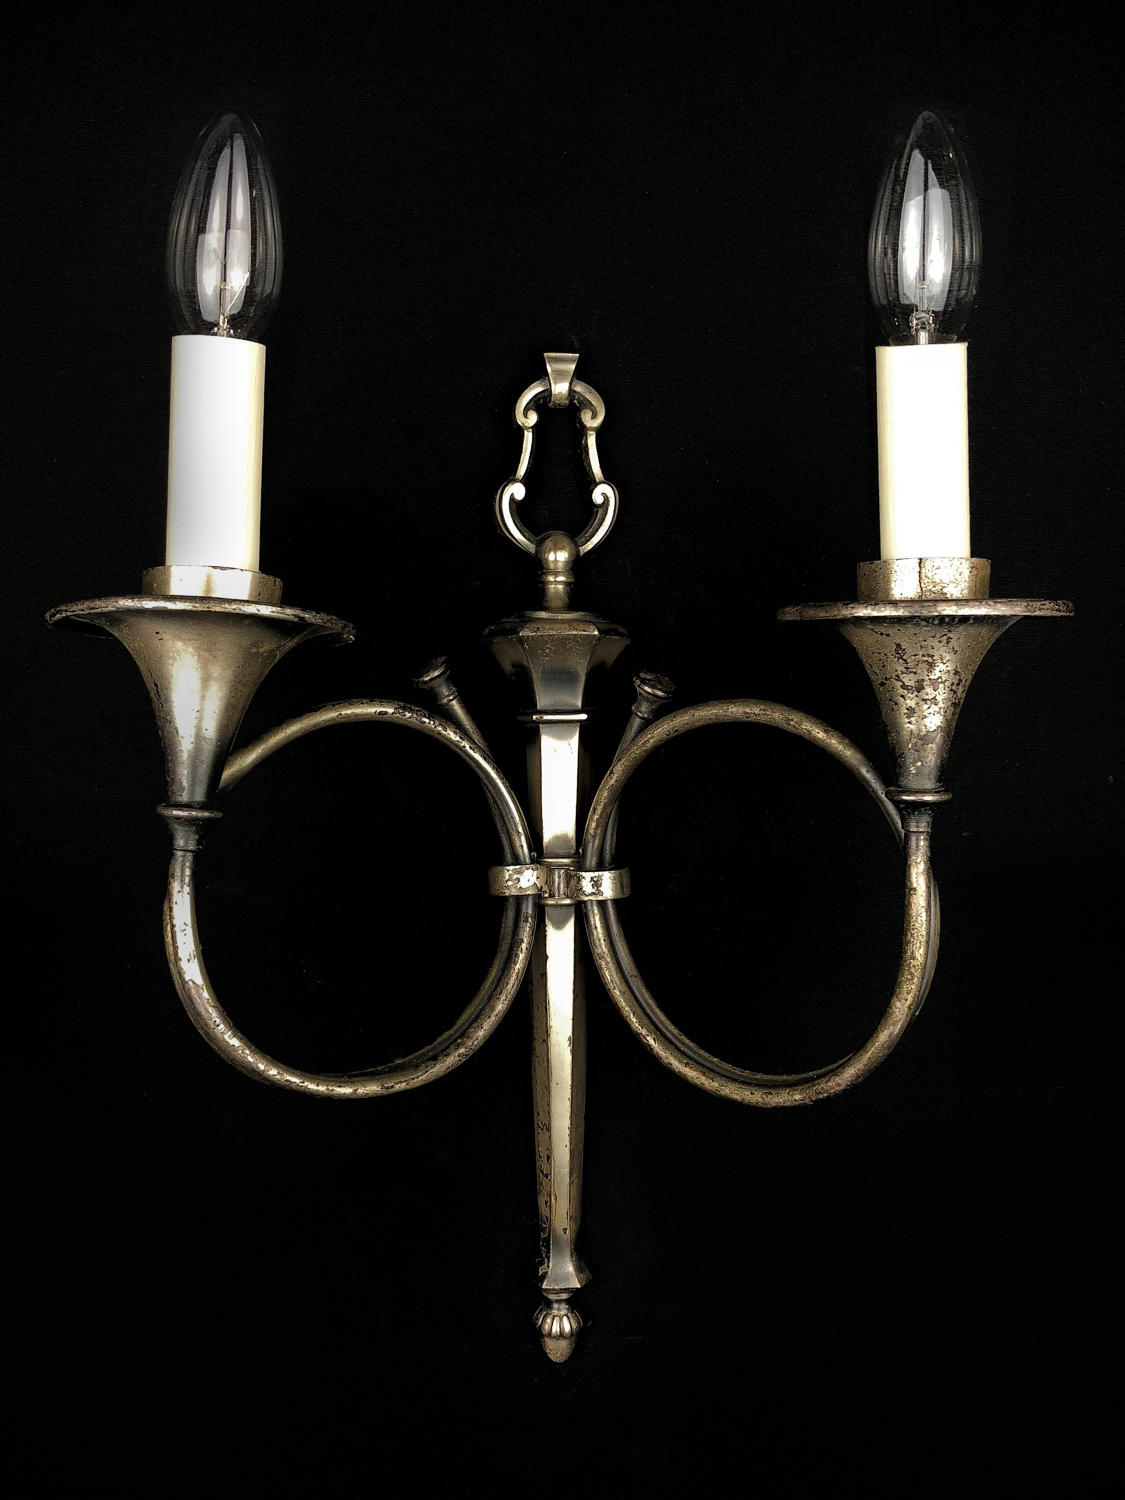 A single hunting trophy wall light